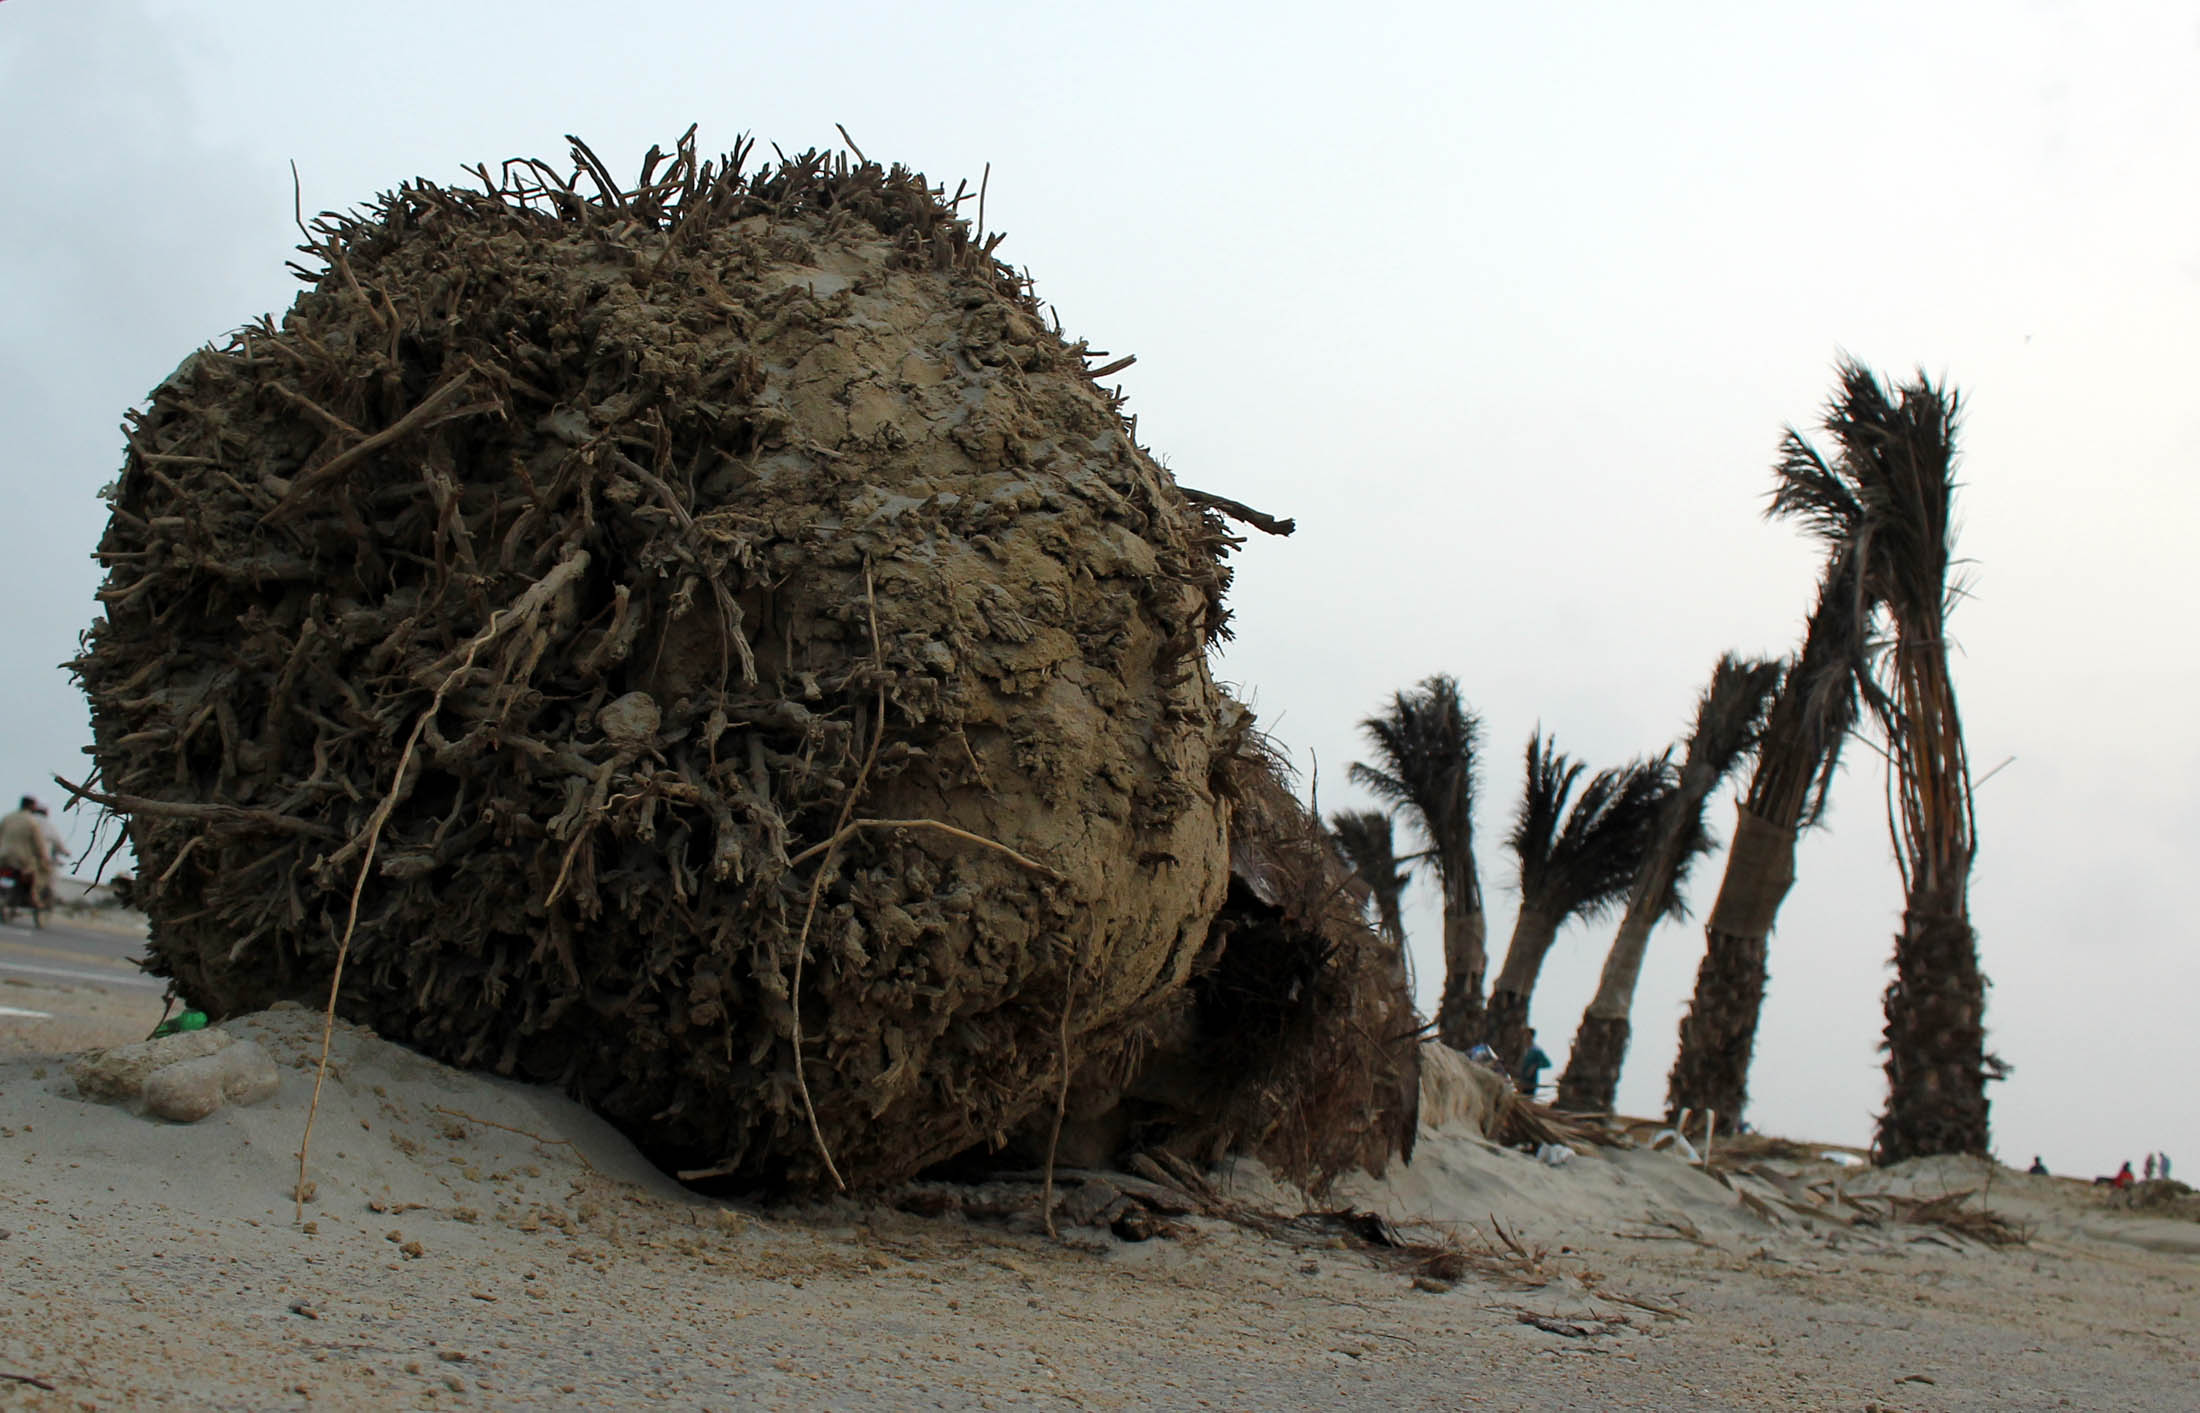 A fallen date palm. Photo: Athar Khan